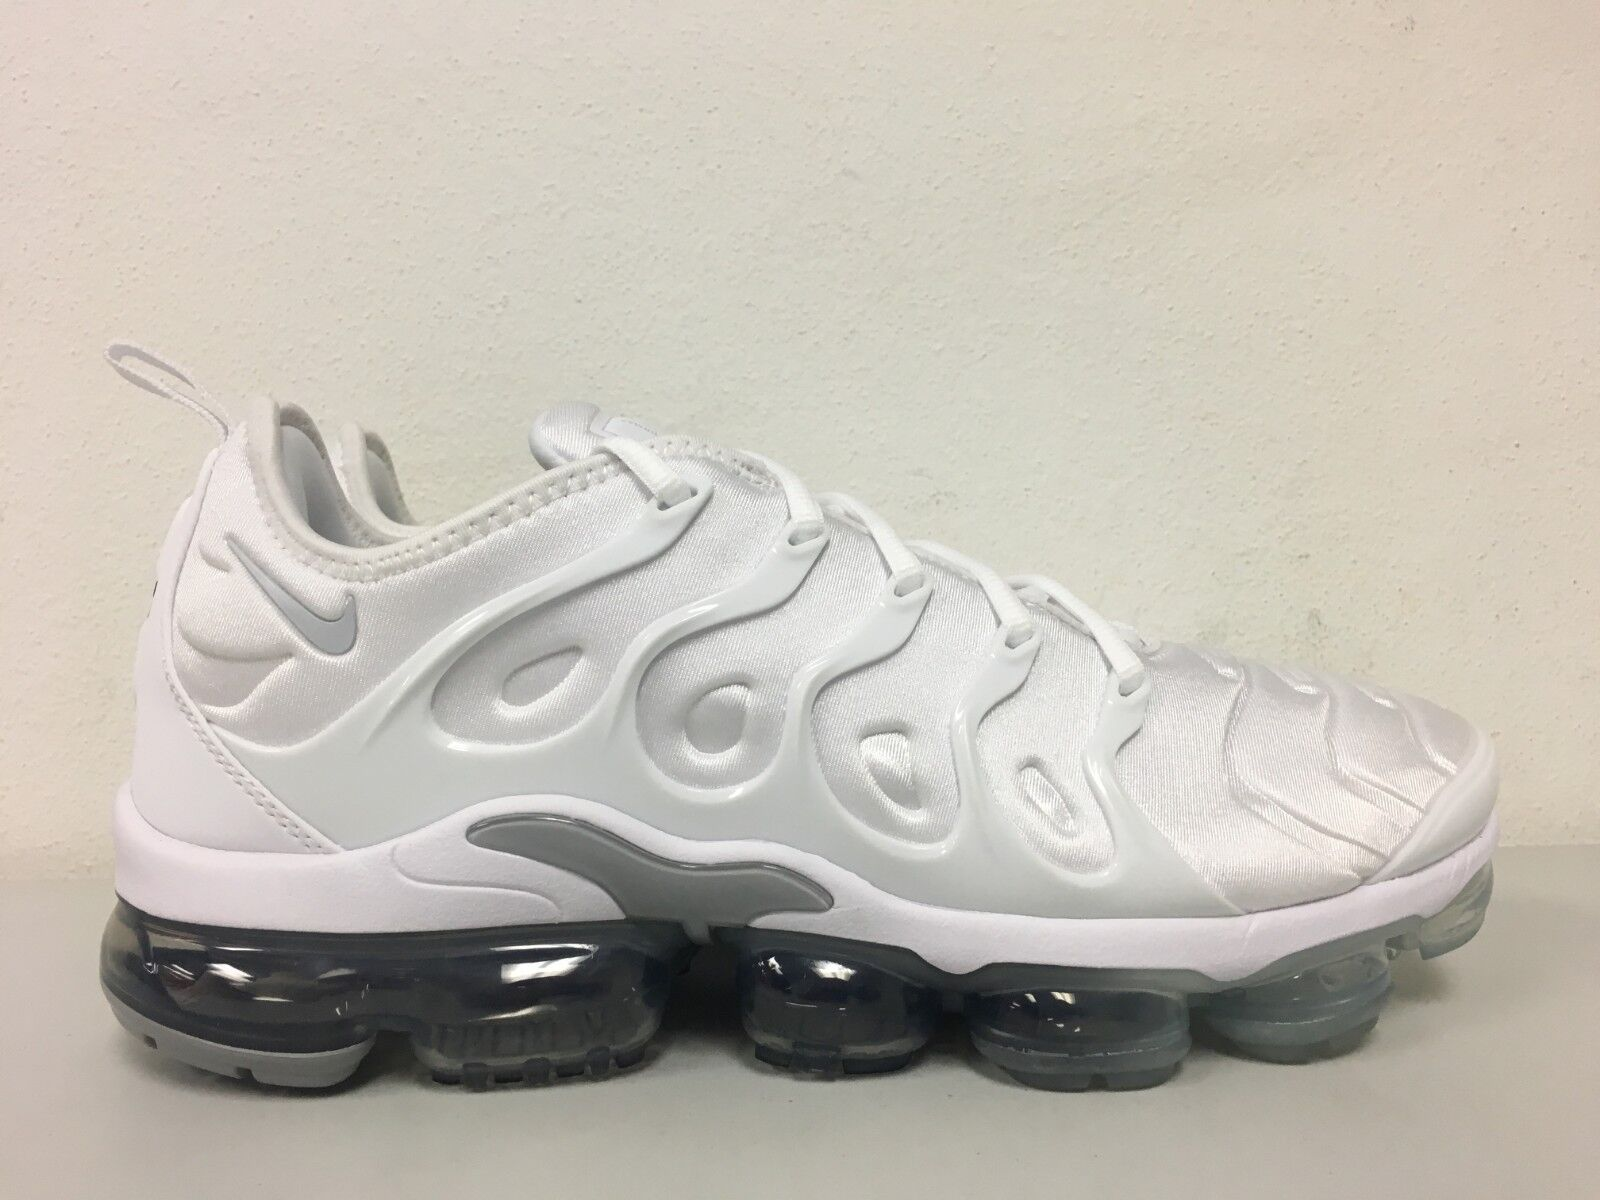 ... Pure Platinum Wolf Grey 924453-102 Mens Size 11 Nike Air Vapormax Plus  White Pure Platinum Wolf Grey 924453-102 Mens Size 11 Nike Air Vapormax Plus  ... ba7cf7035